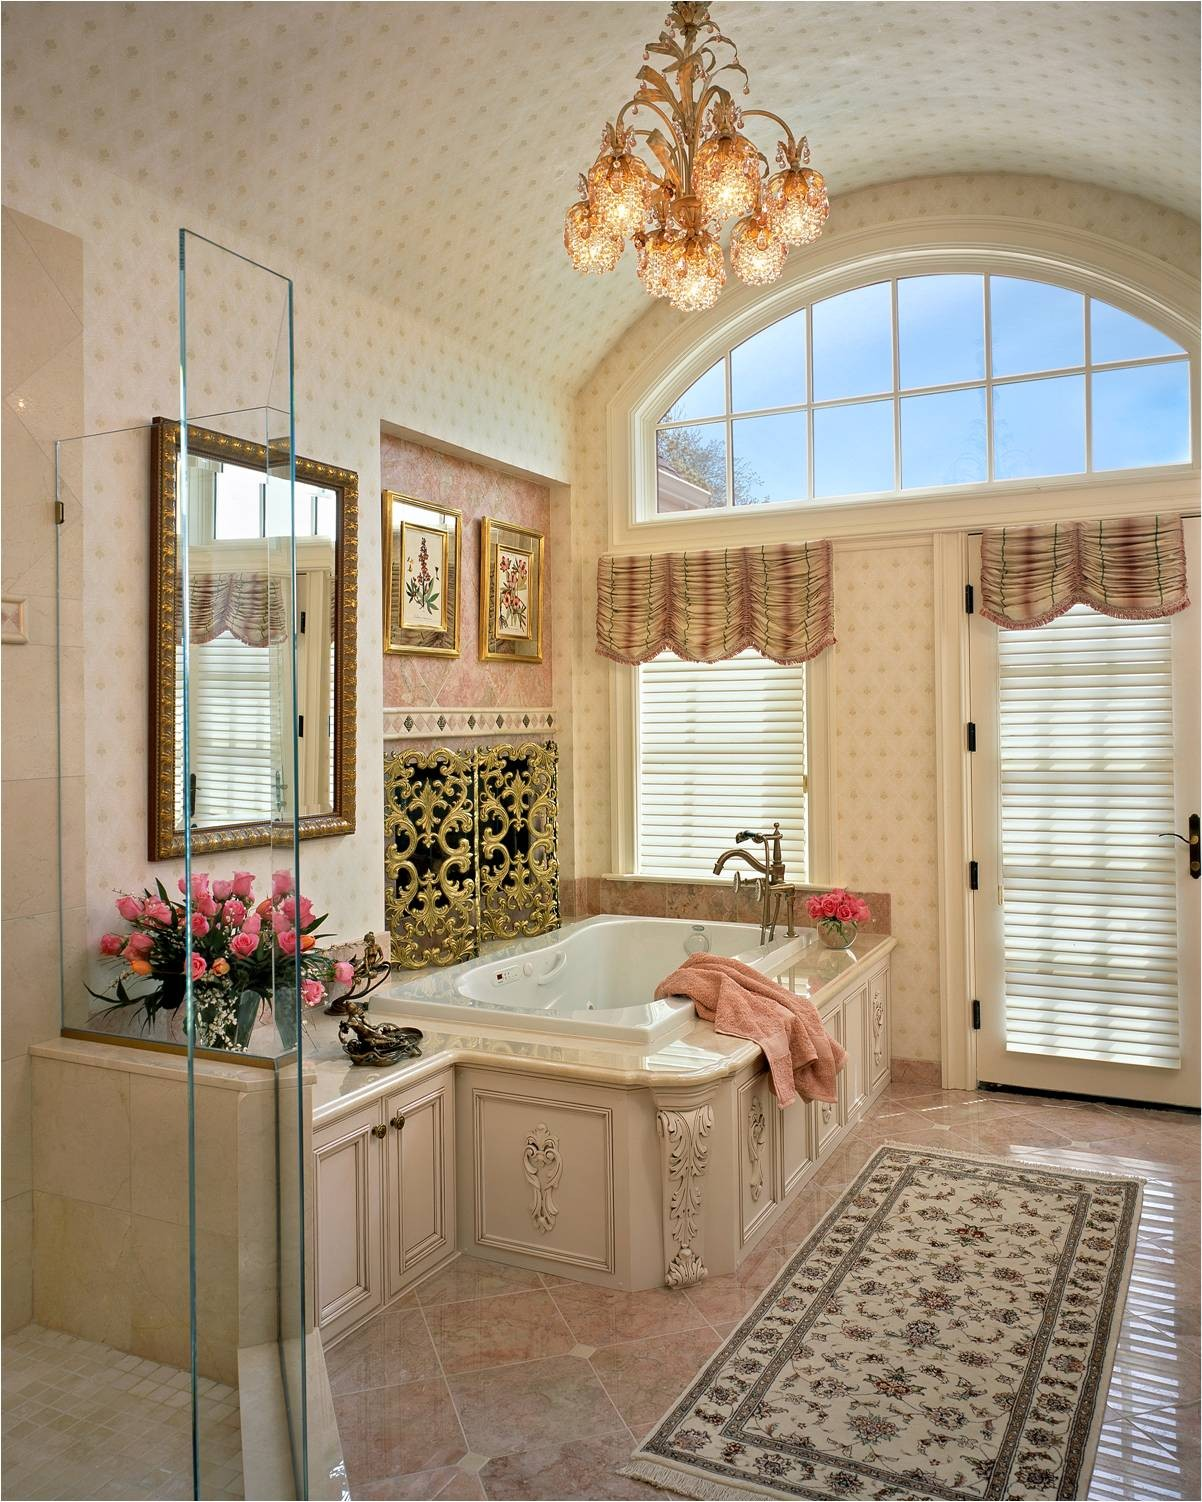 Beautiful Bathrooms With Bidet: 7 Beautiful Bathrooms That Are Anything But Modern